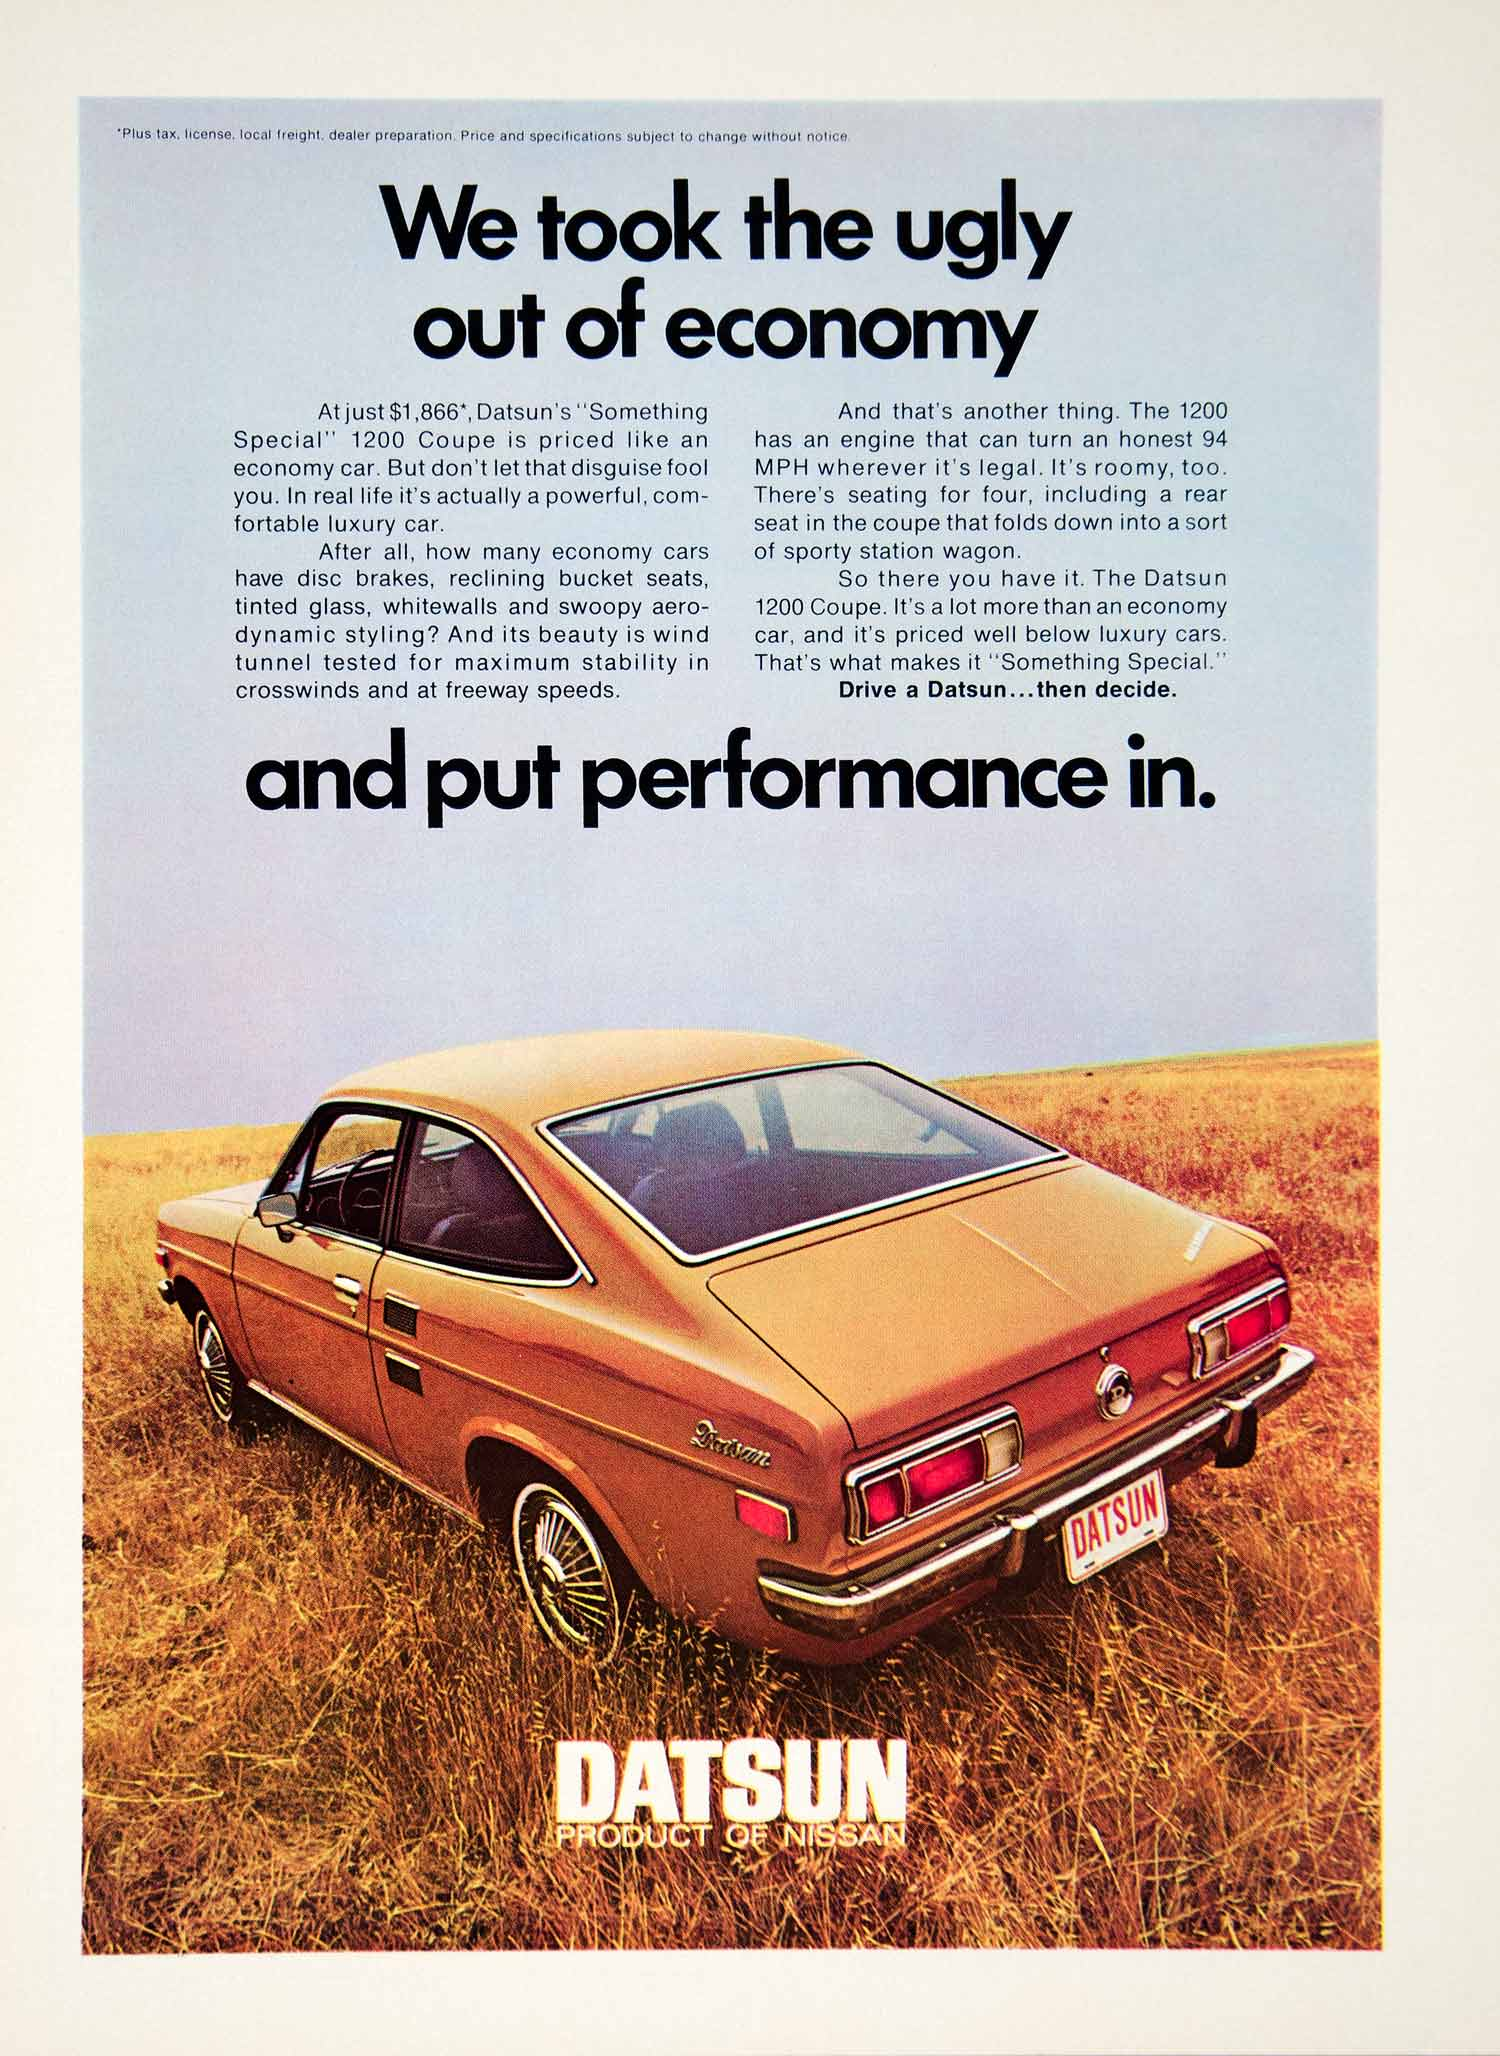 1971 Ad Datsun Nissan 1200 2 Door Coupe Compact Car Ugly Economy Automobile YCD8